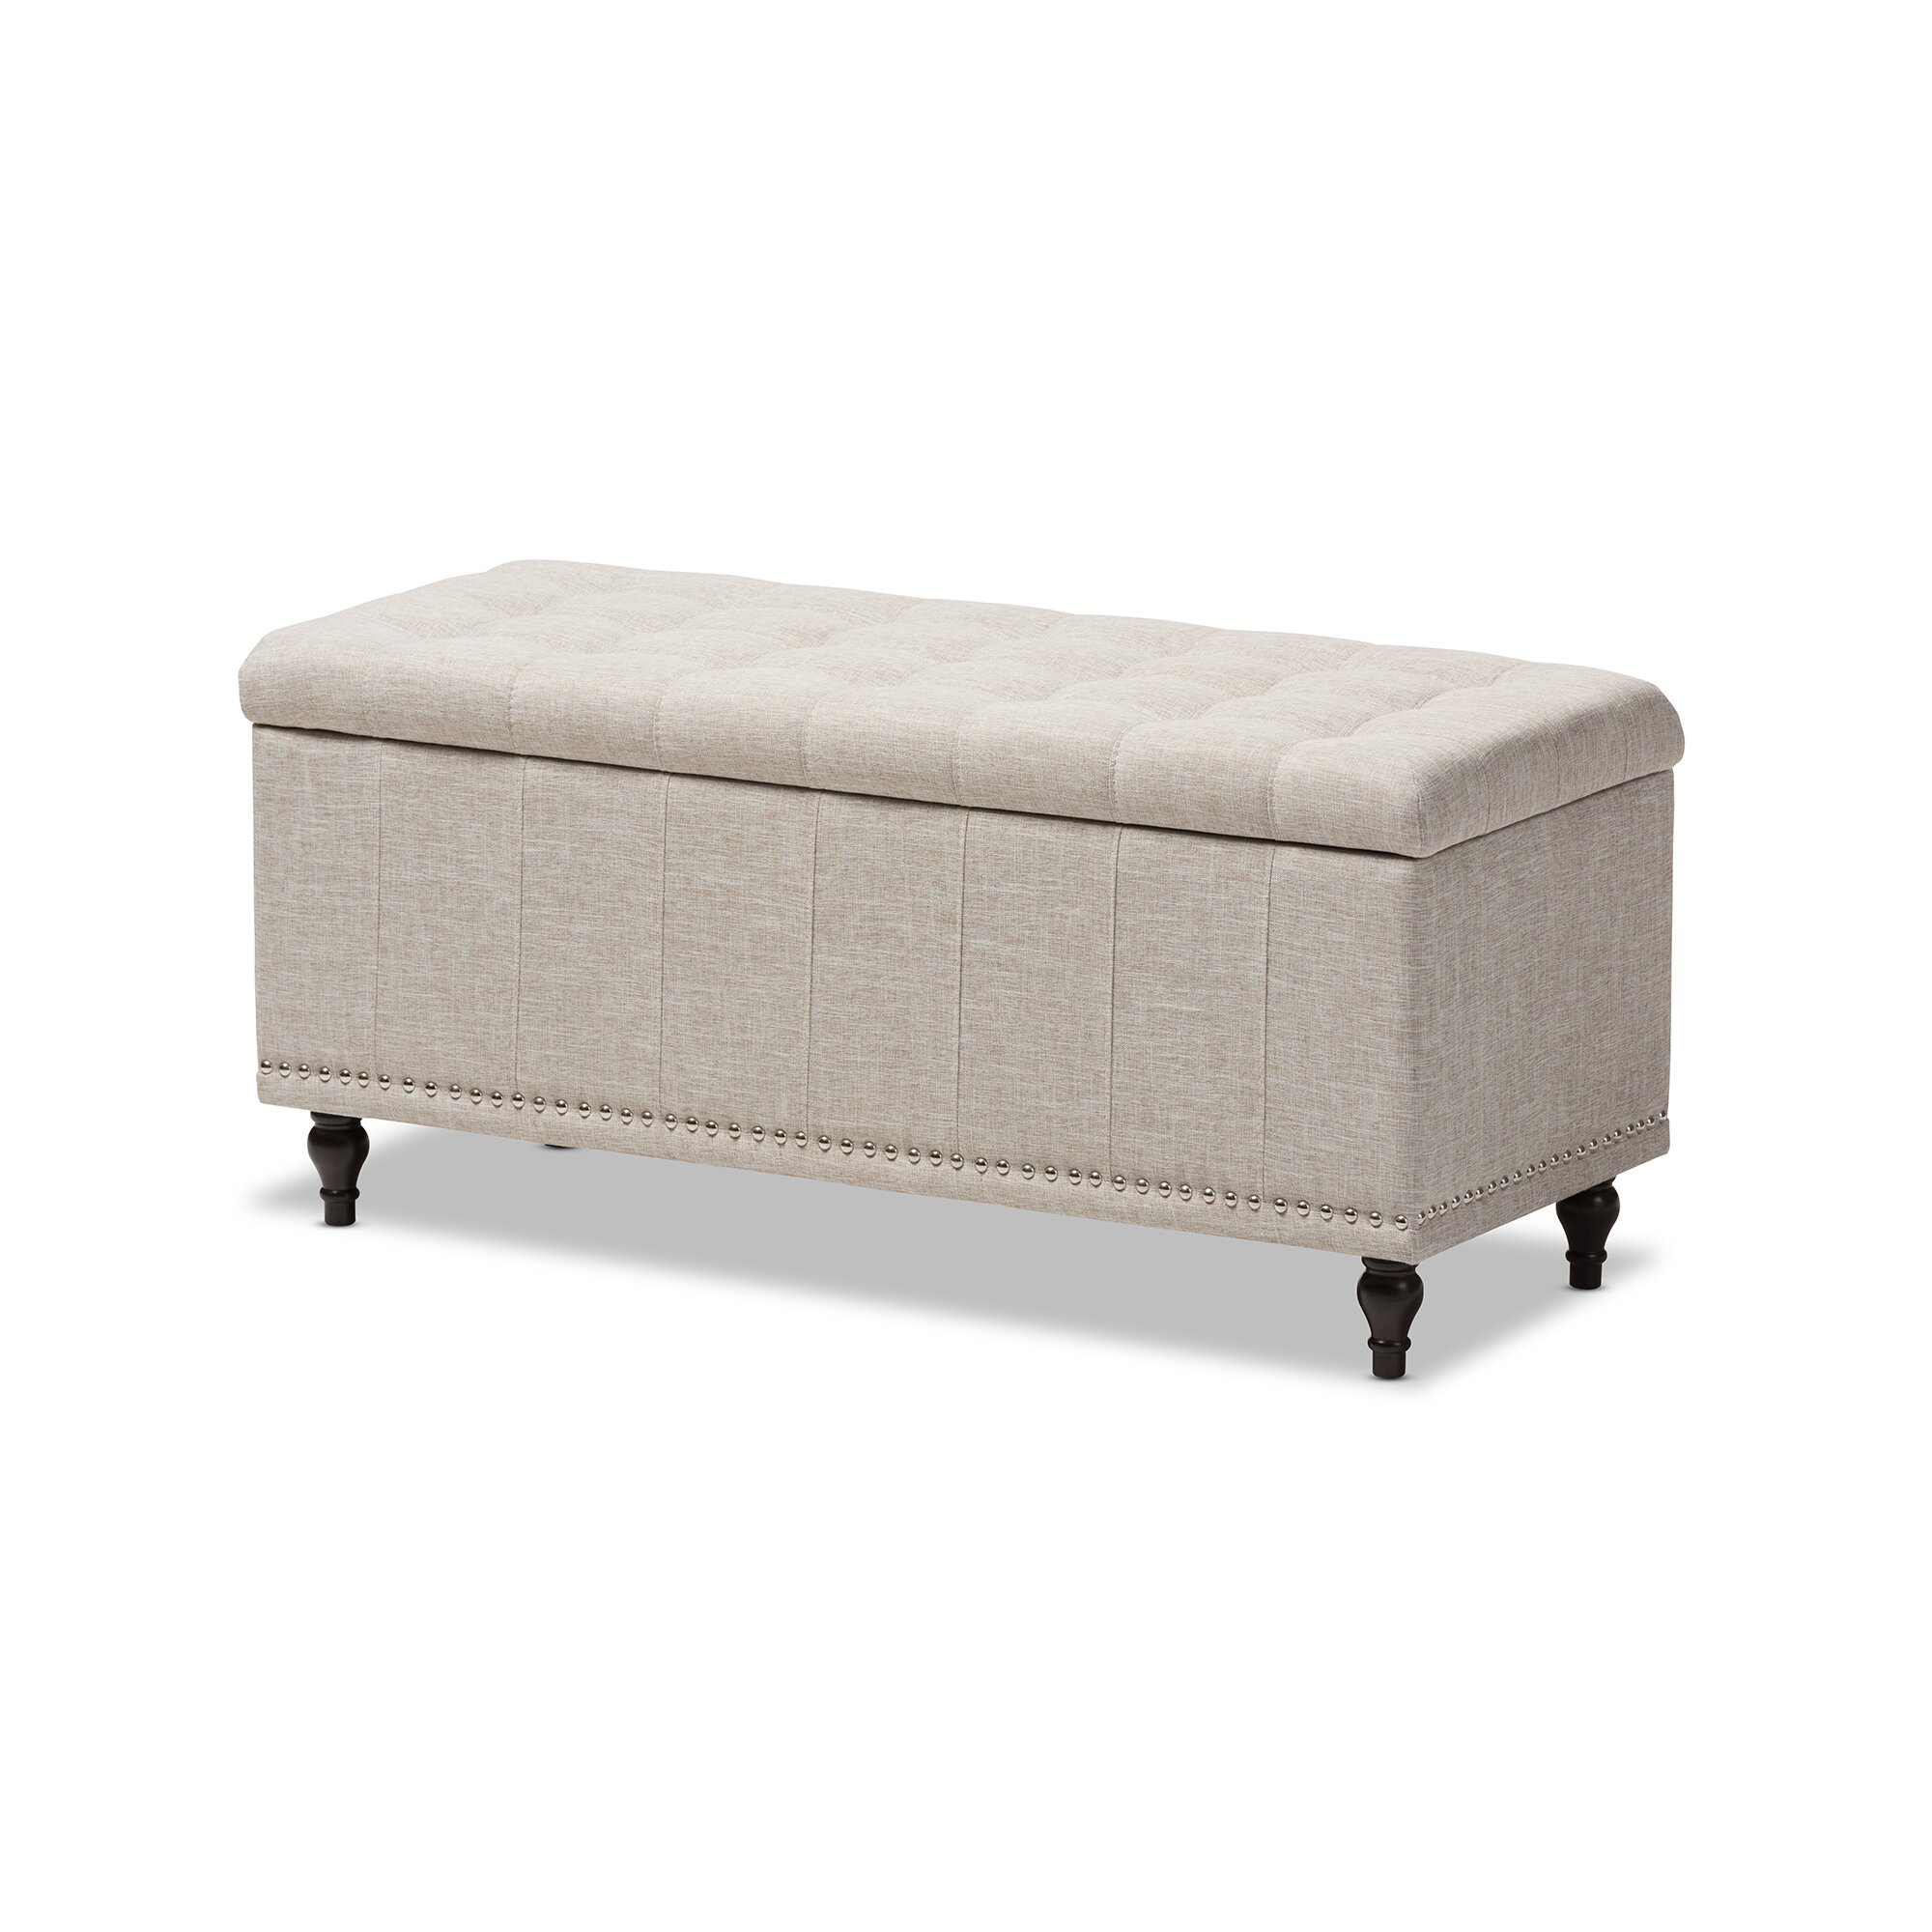 Wholesale Interiors Baxton Studio Luca Upholstered Storage Bedroom Bench Reviews